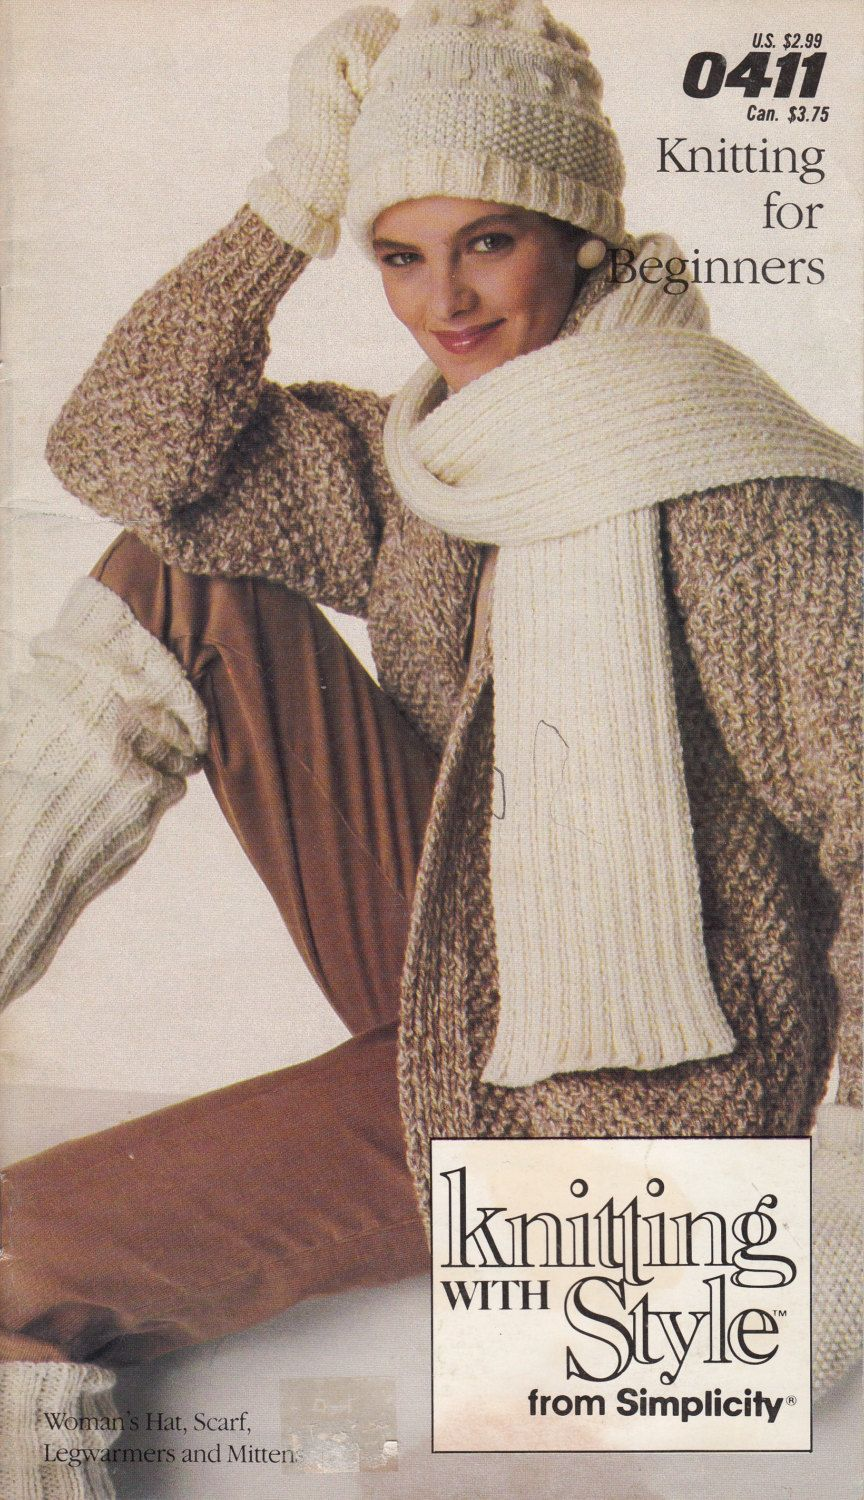 Simplicity Knitting With Style Knitting Pattern Book - Sweater ...